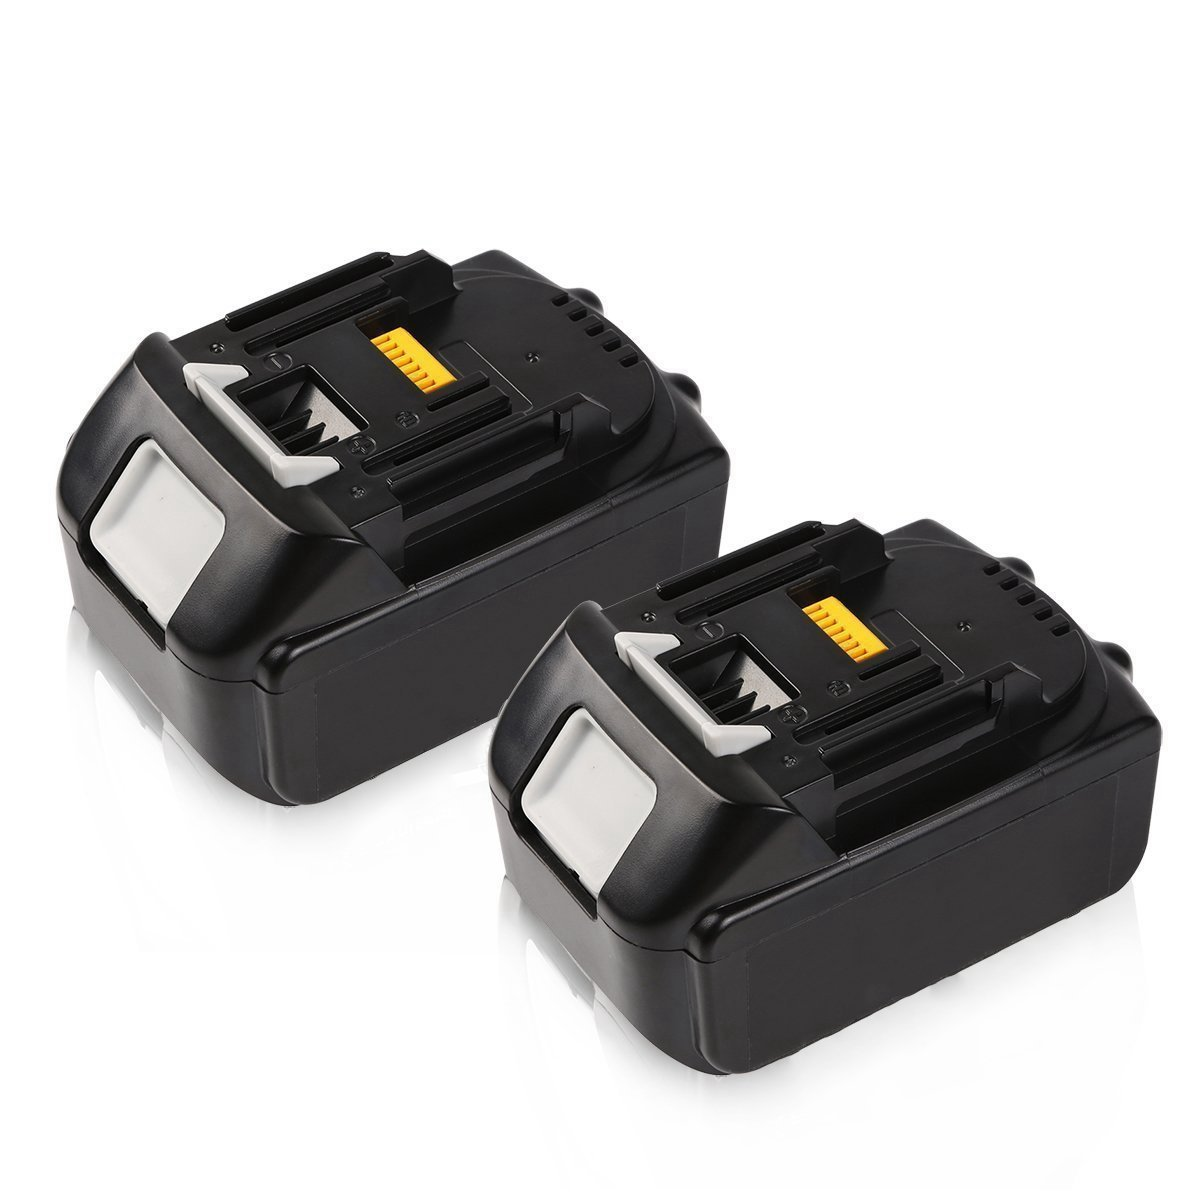 2Pack 5.0Ah BL1850 Battery Replacement for Makita 18V LXT Lithium-ion BL1815 BL1820 BL1830 BL1840 BL1850 Cordless Power Tools